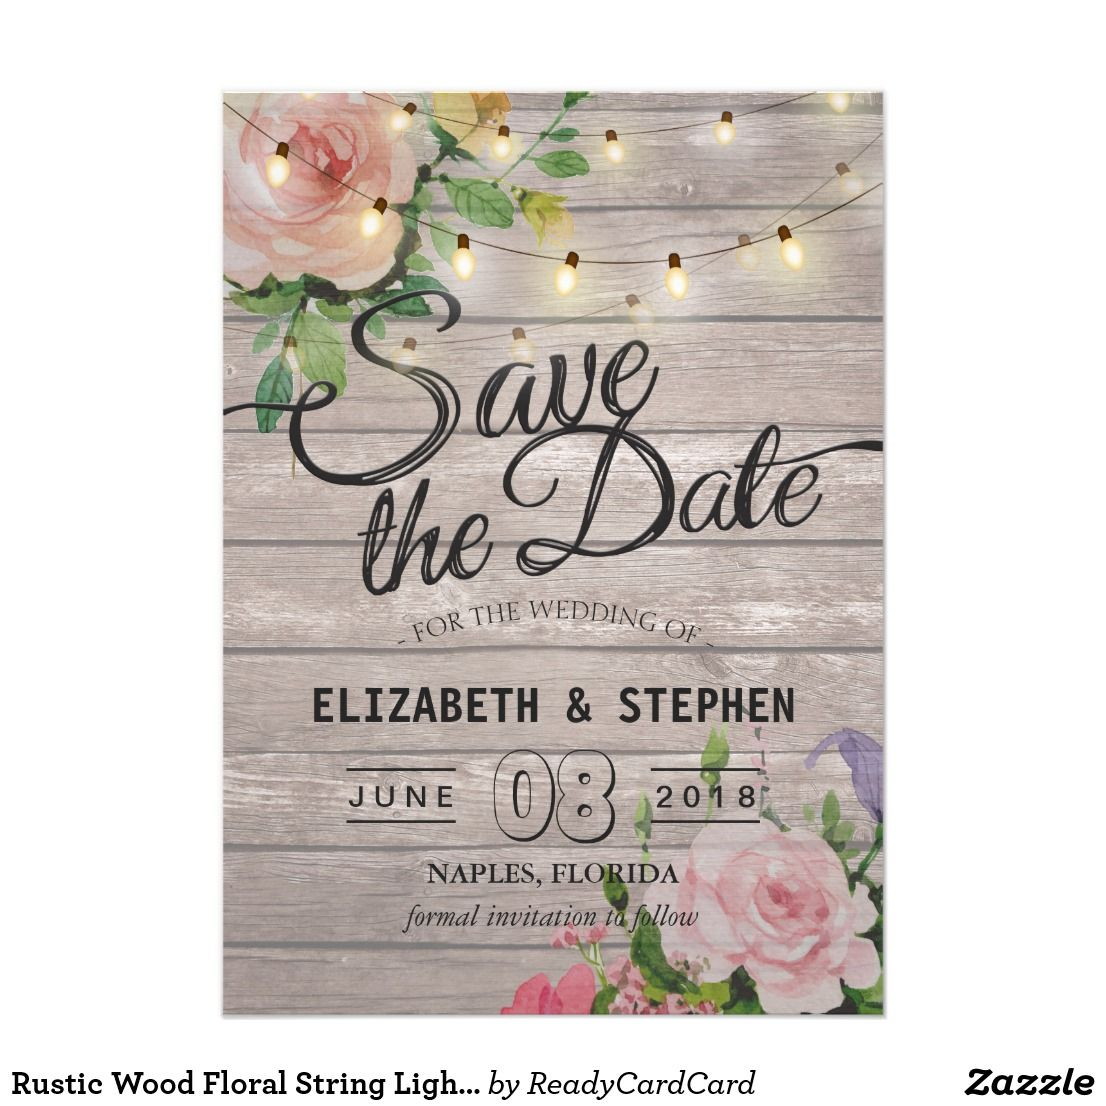 rustic wood floral string lights wedding save date save the date in